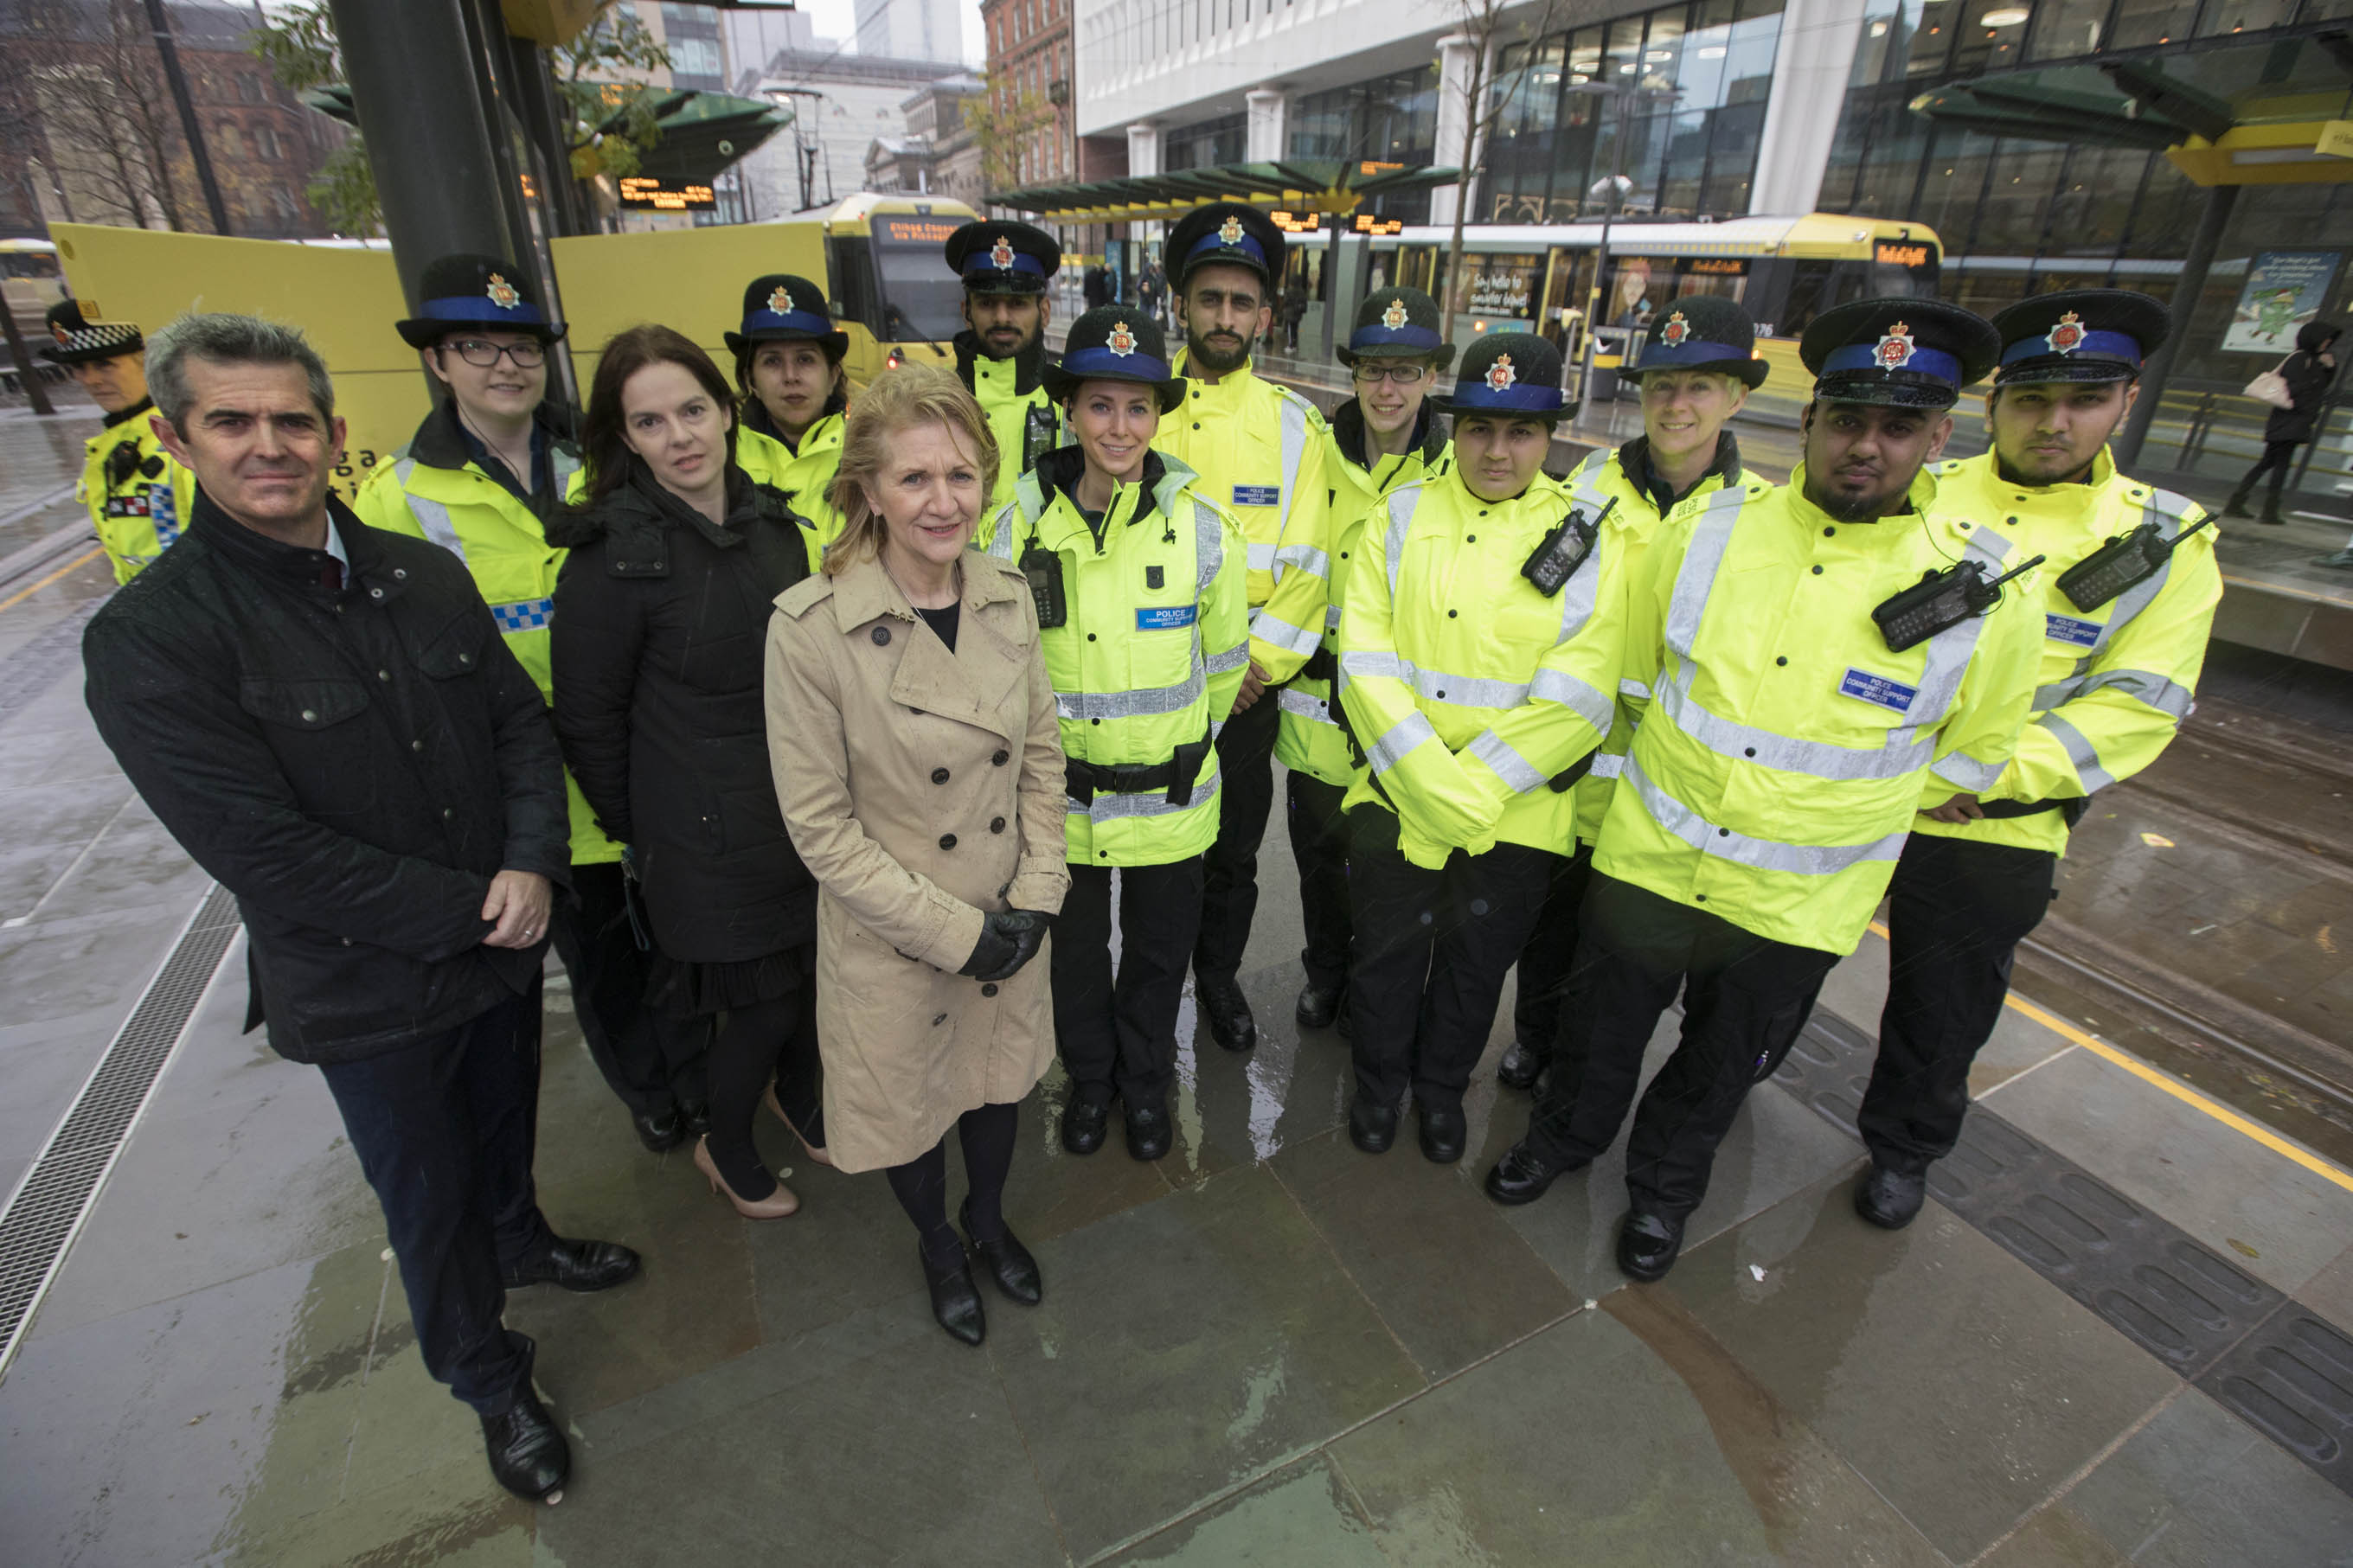 Ten new PCSOs for Travelsafe Partnership